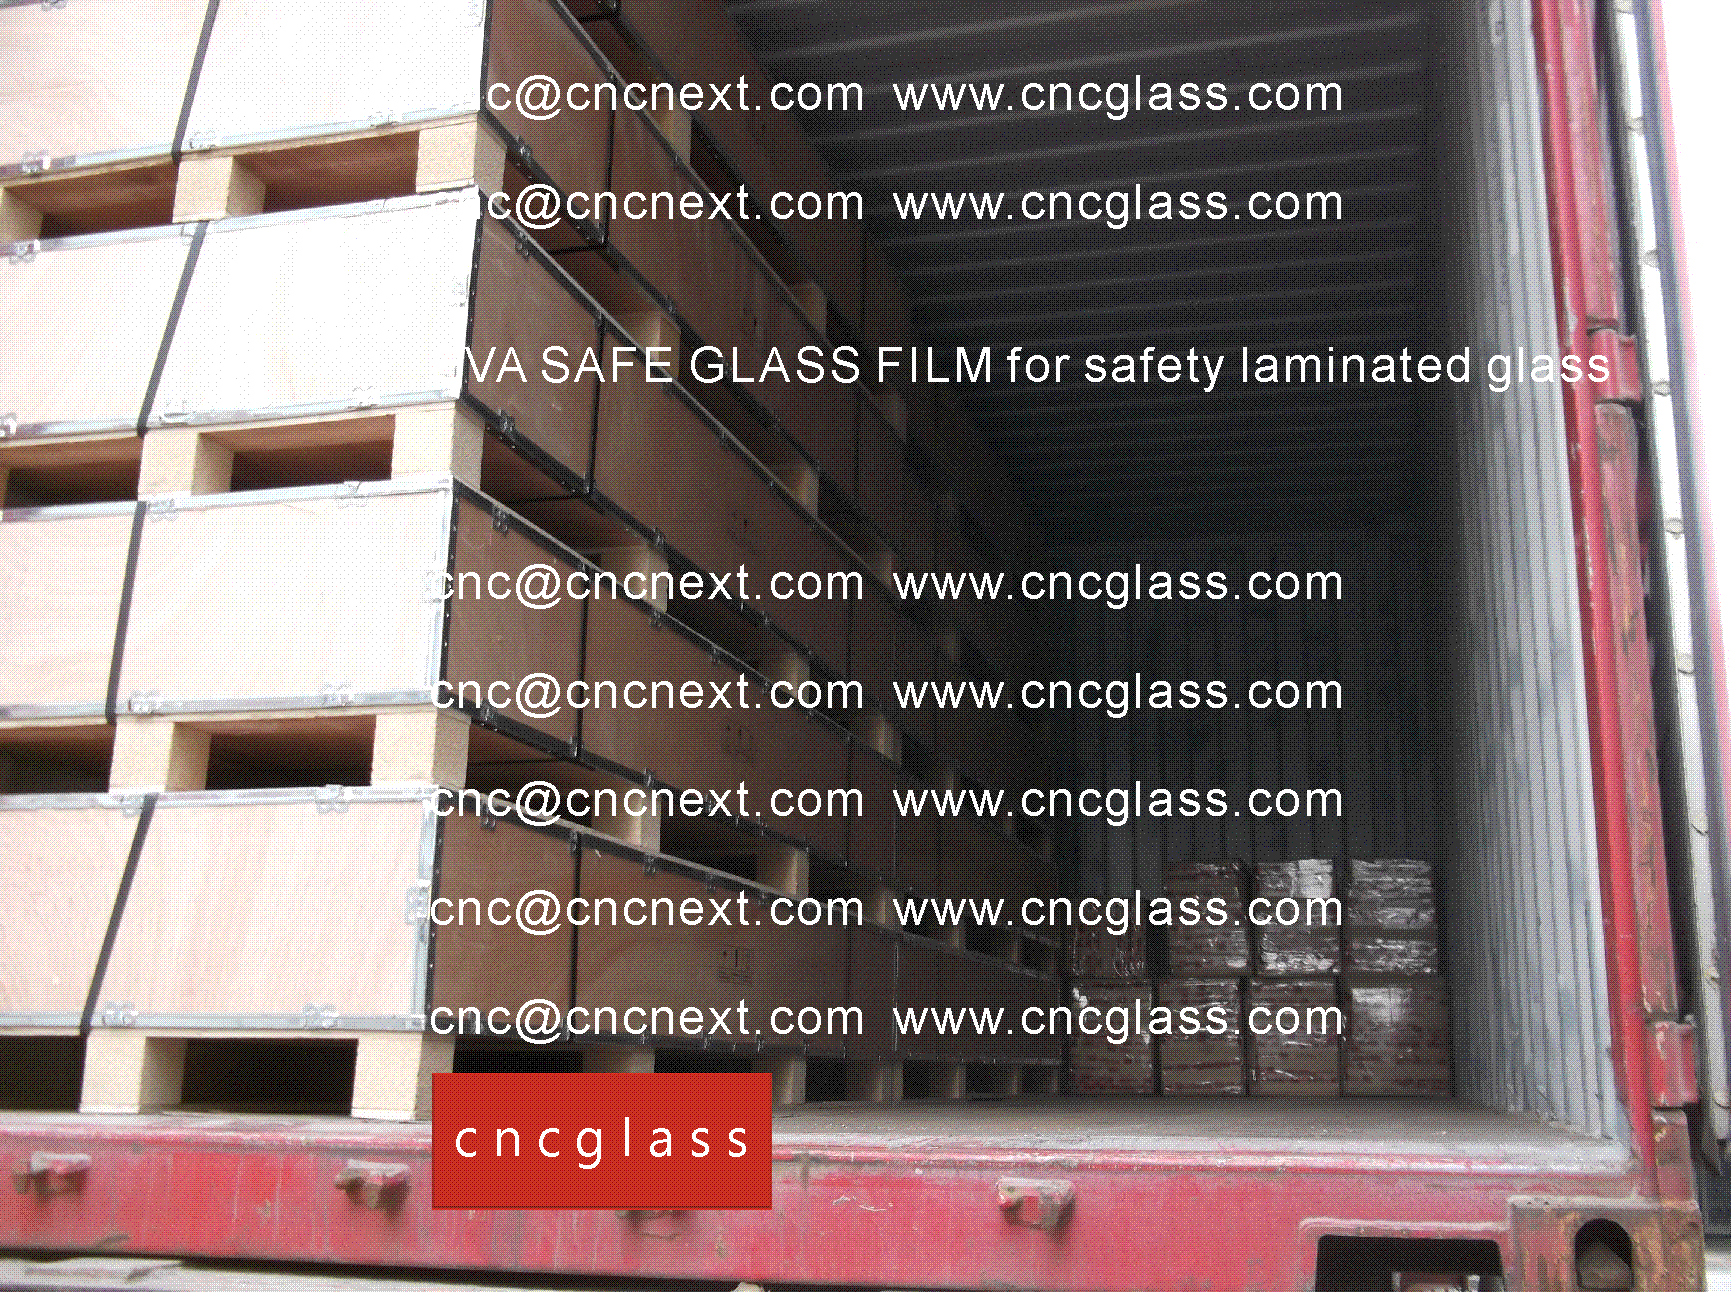 002 EVA SAFE GLASS FILM LOADING CONTAINER (SAFETY LAMINATED GLASS)